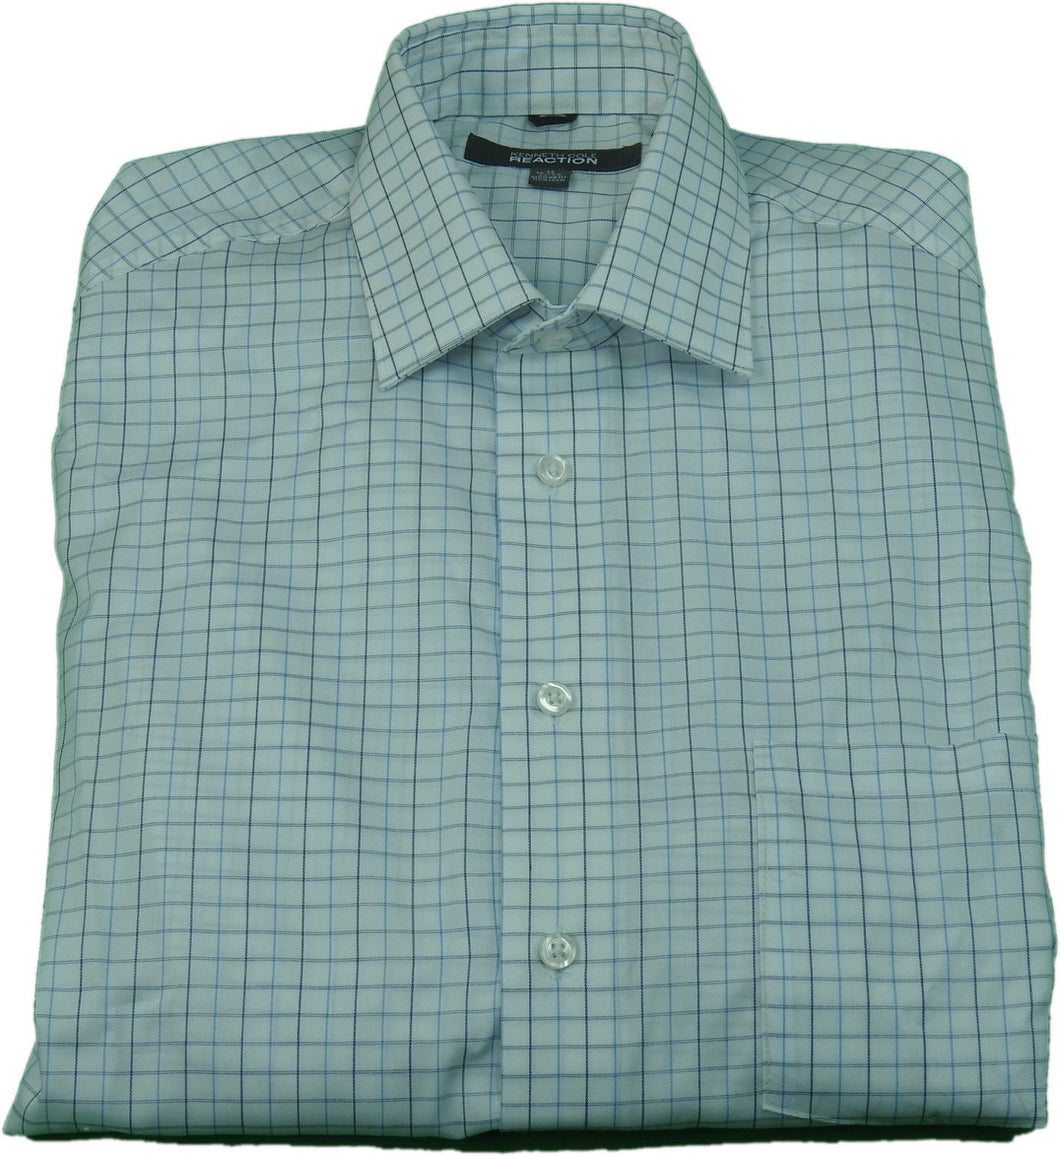 Kenneth Cole Reaction Mens Size Medium 15-15.5 (32-33) Dress Shirt, Blue/White